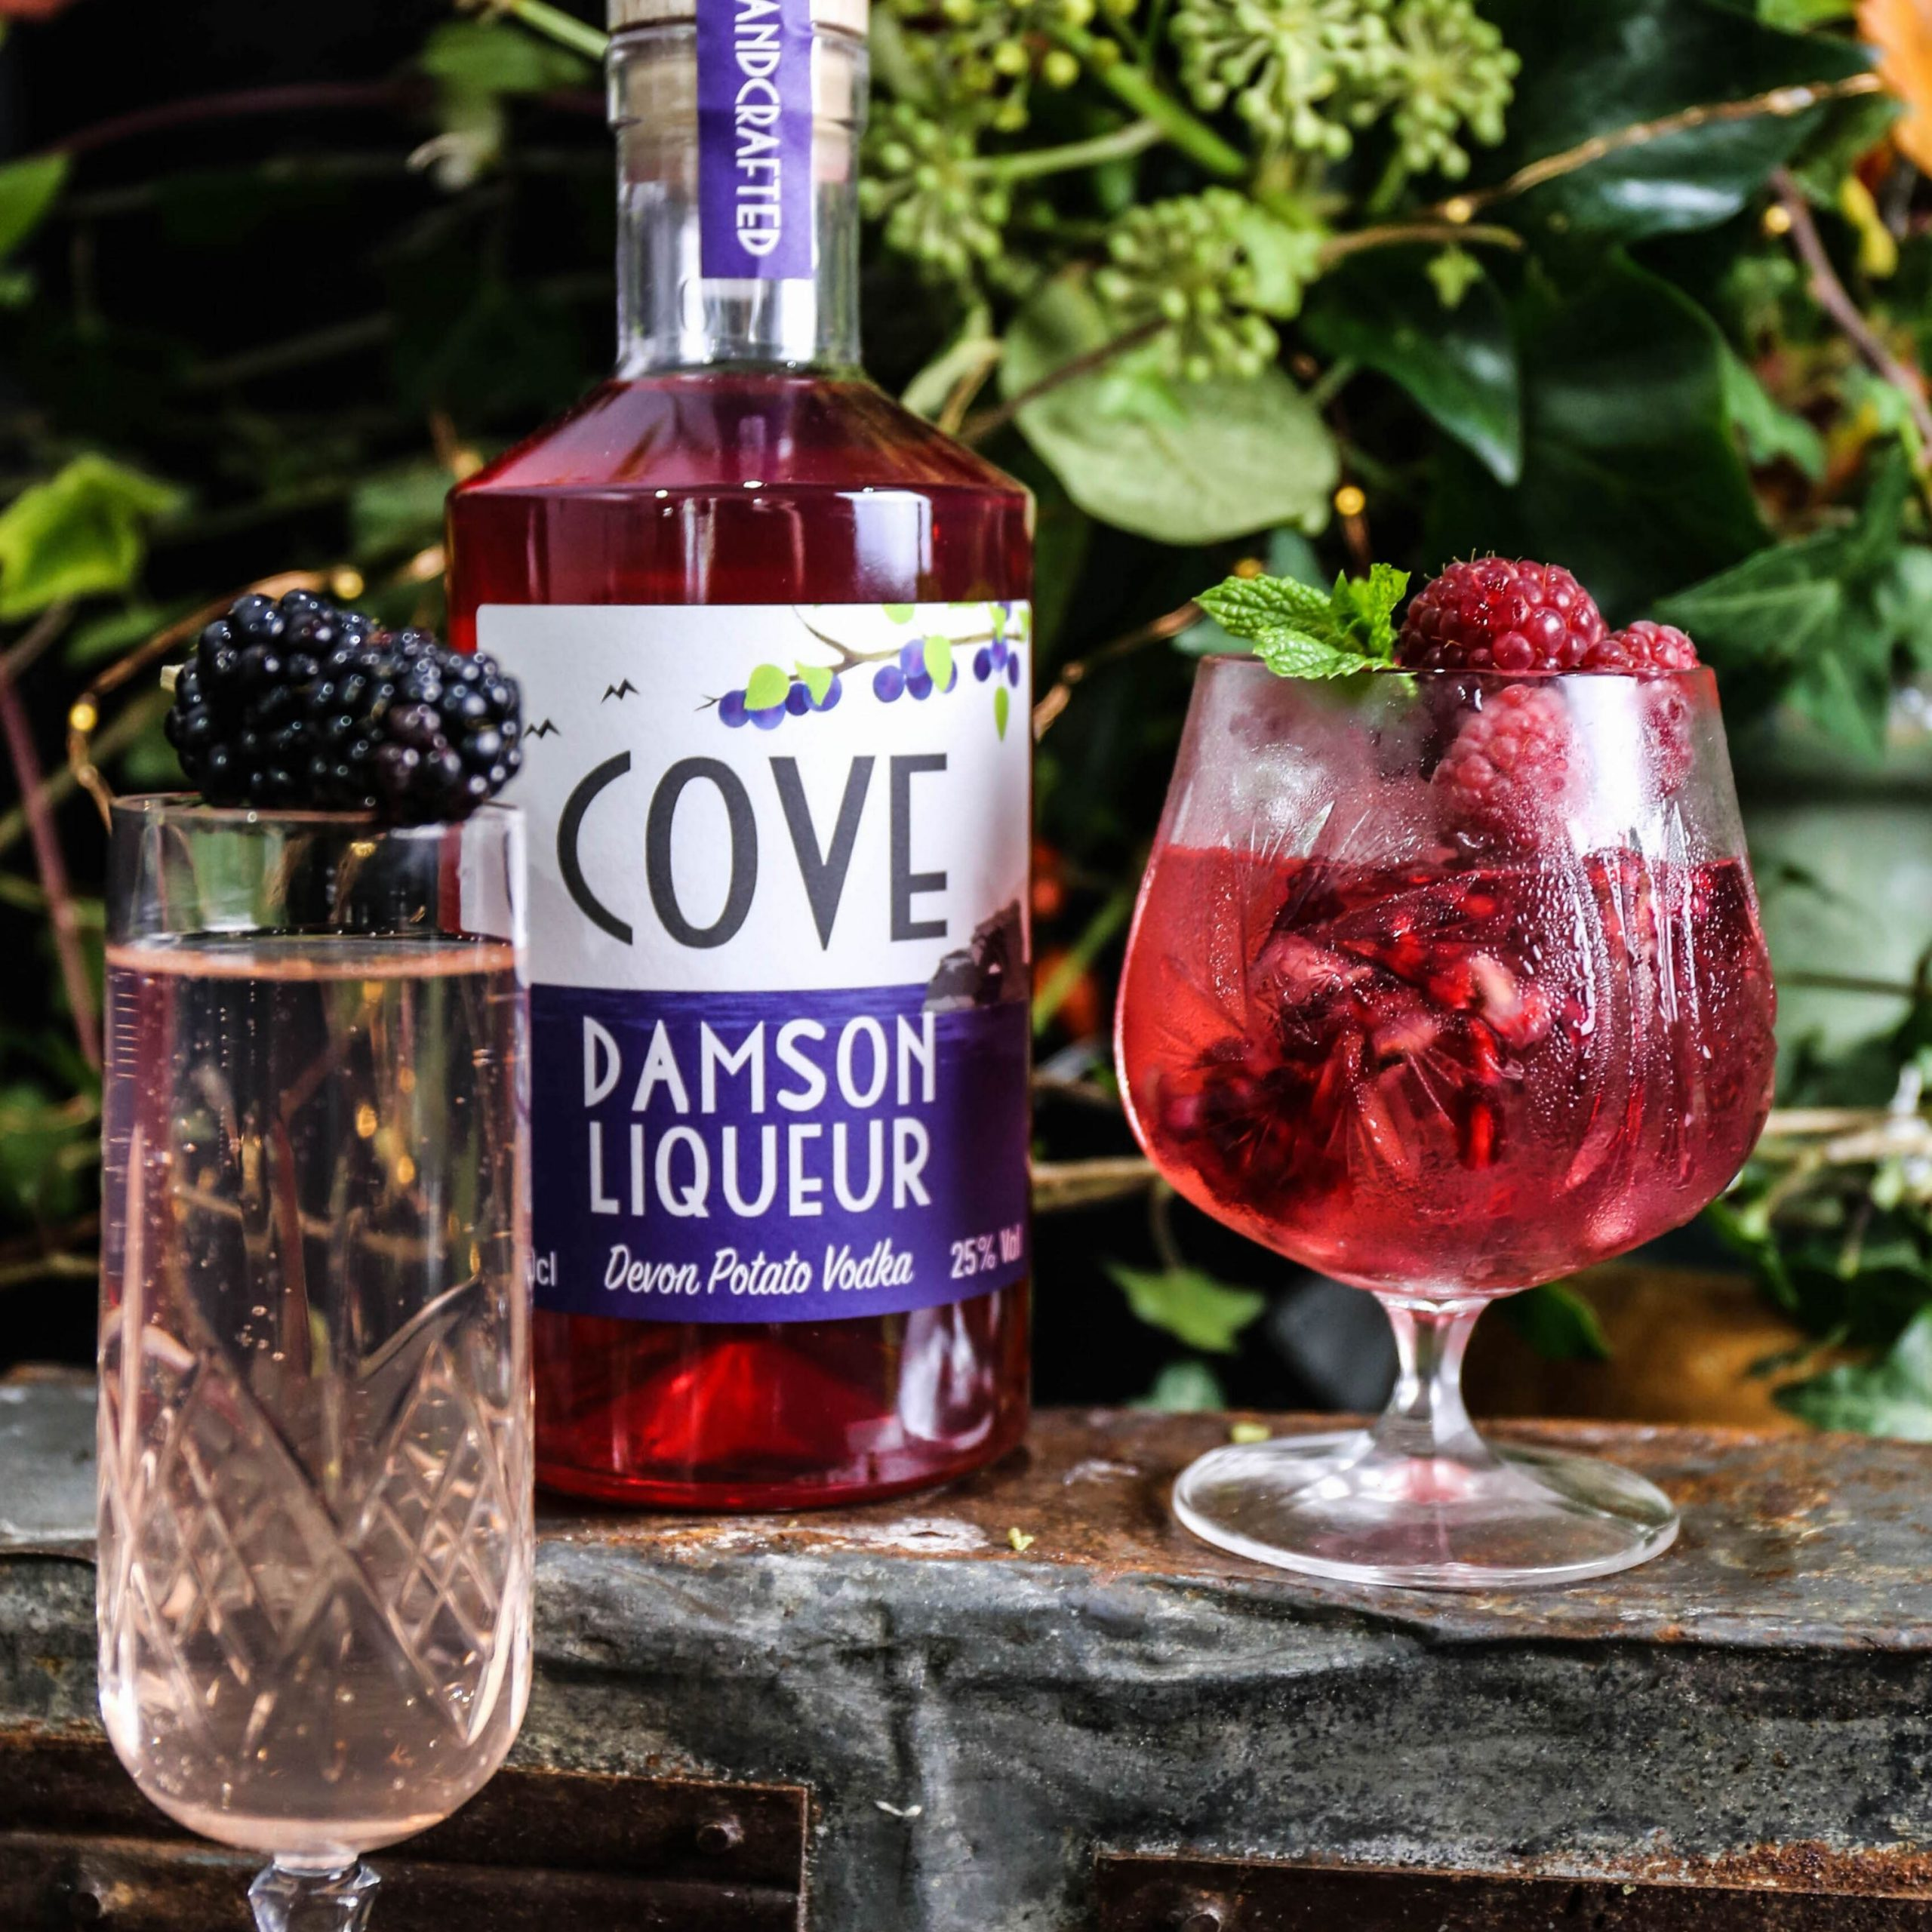 Damson Liqueur served with bubbly